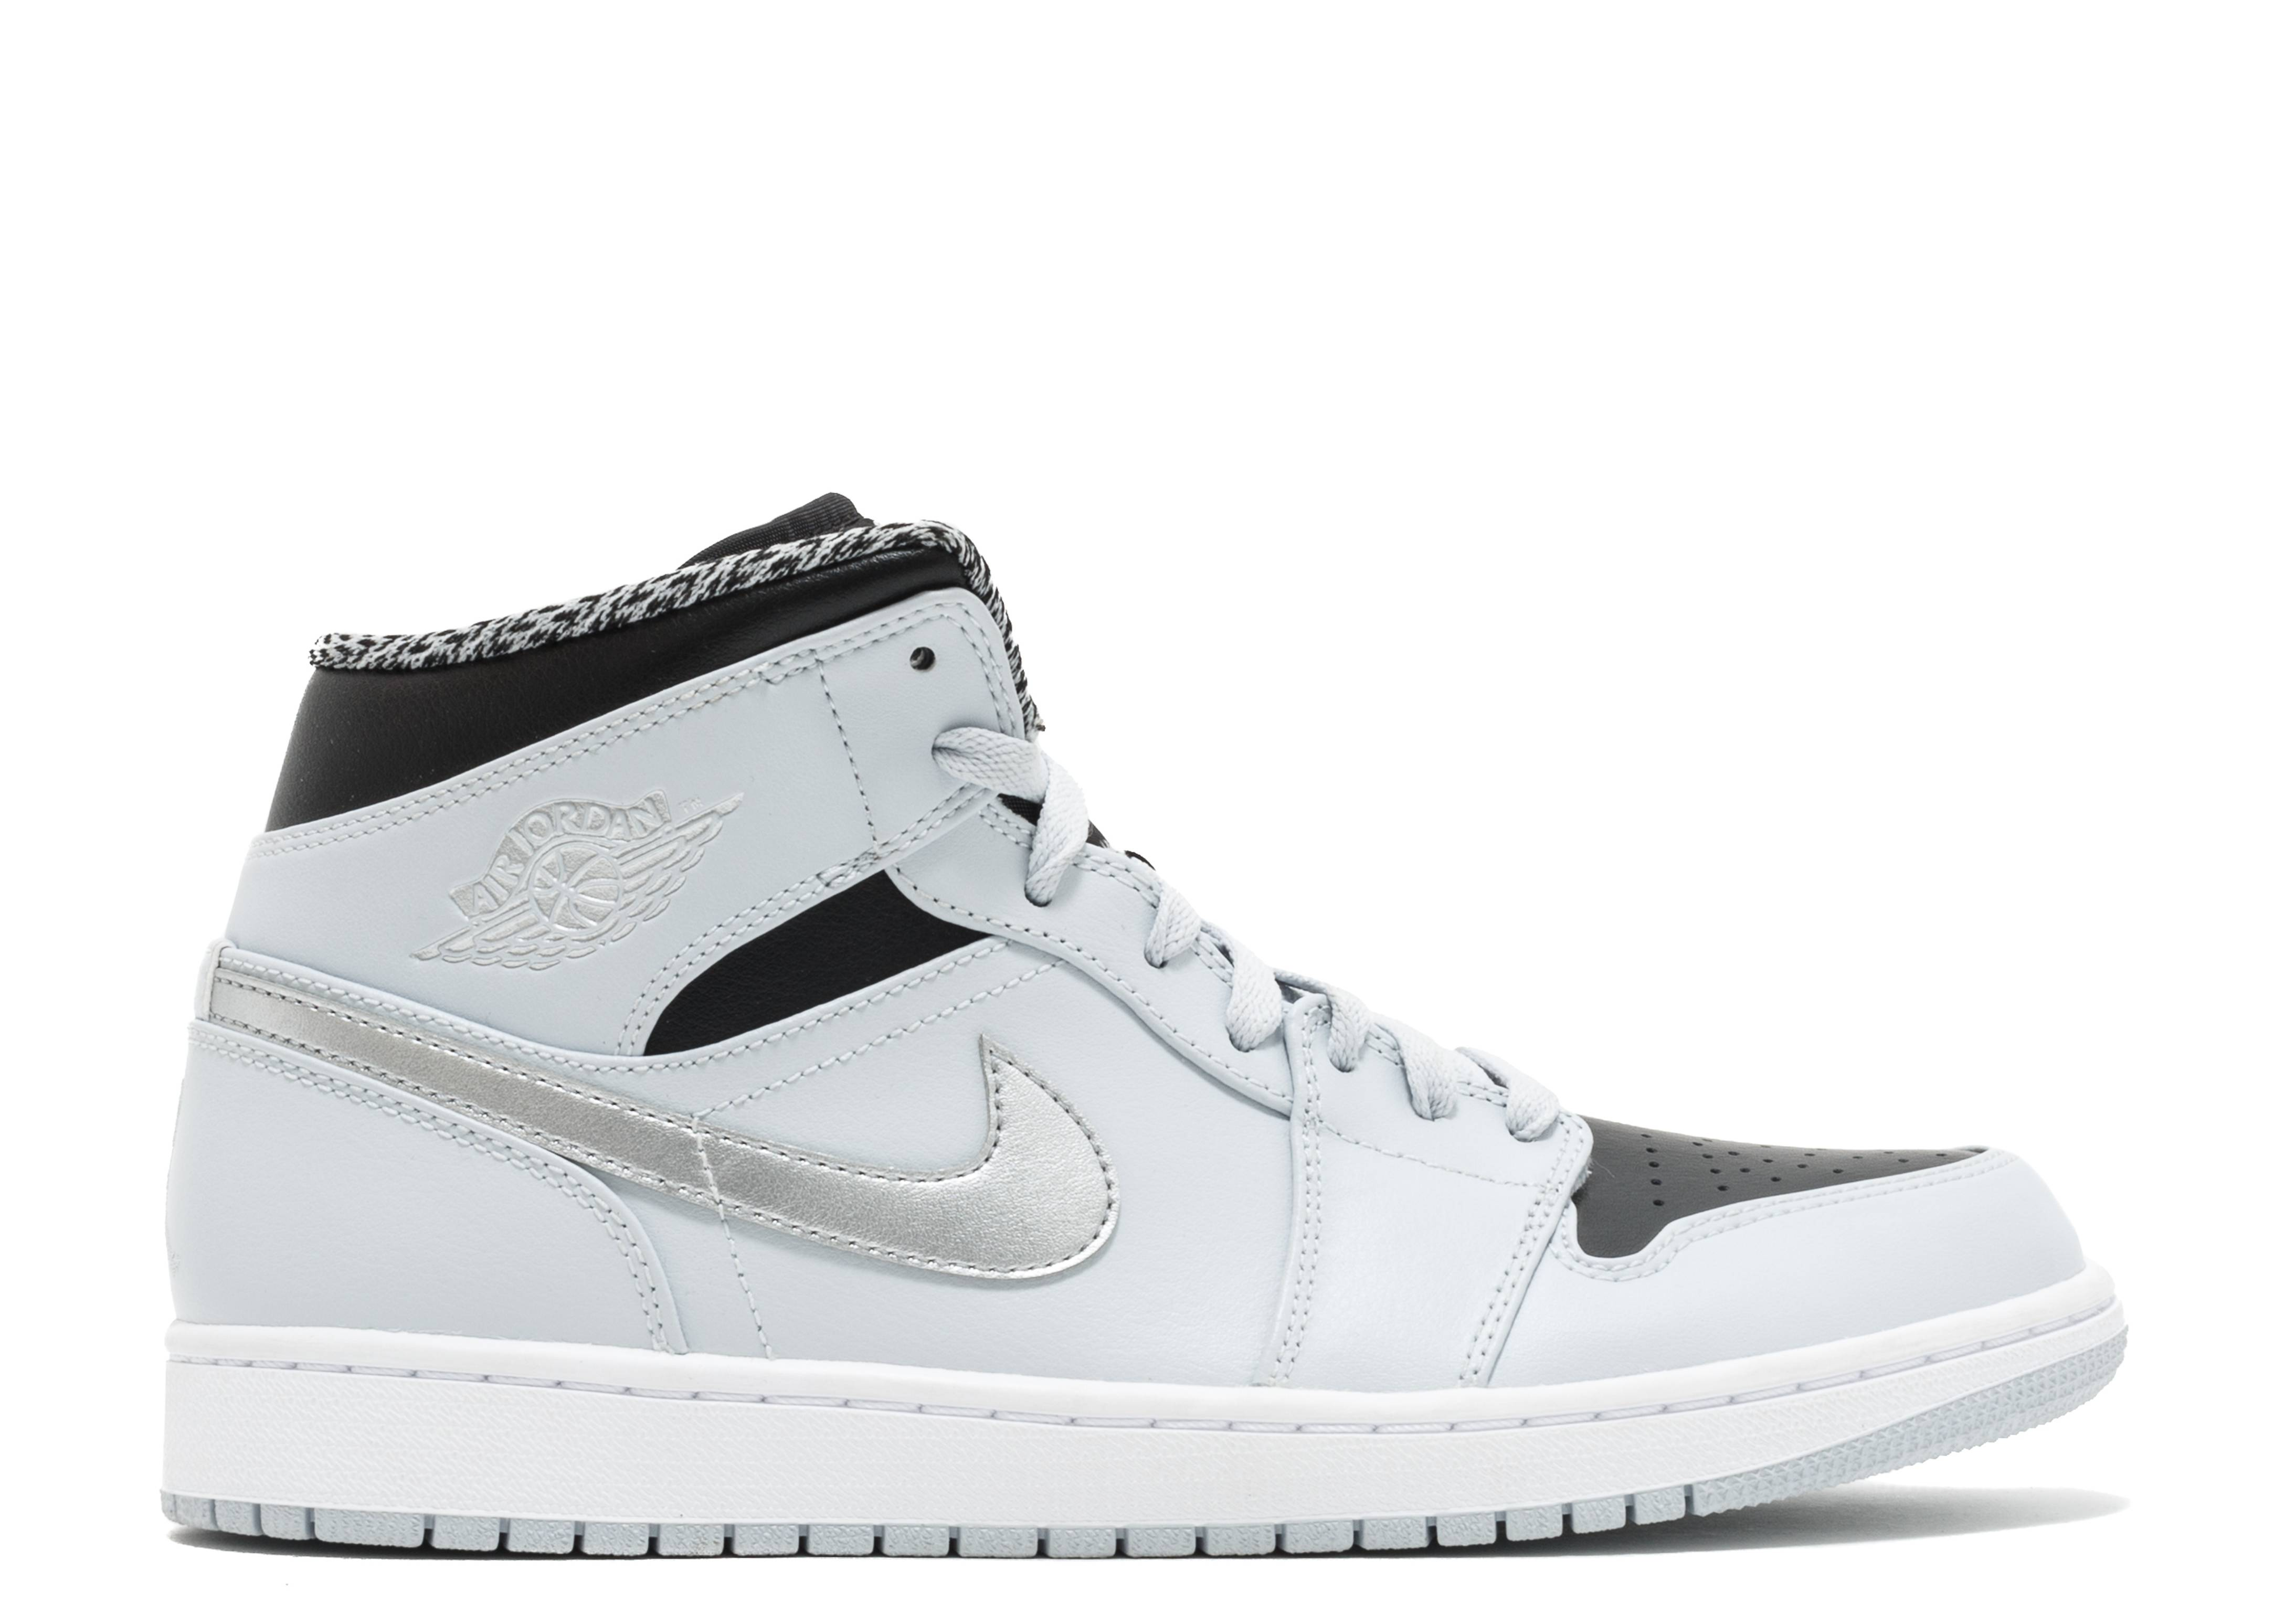 Retro 1 Grey' Air Mid 'wolf Jordan PkTXZuOi